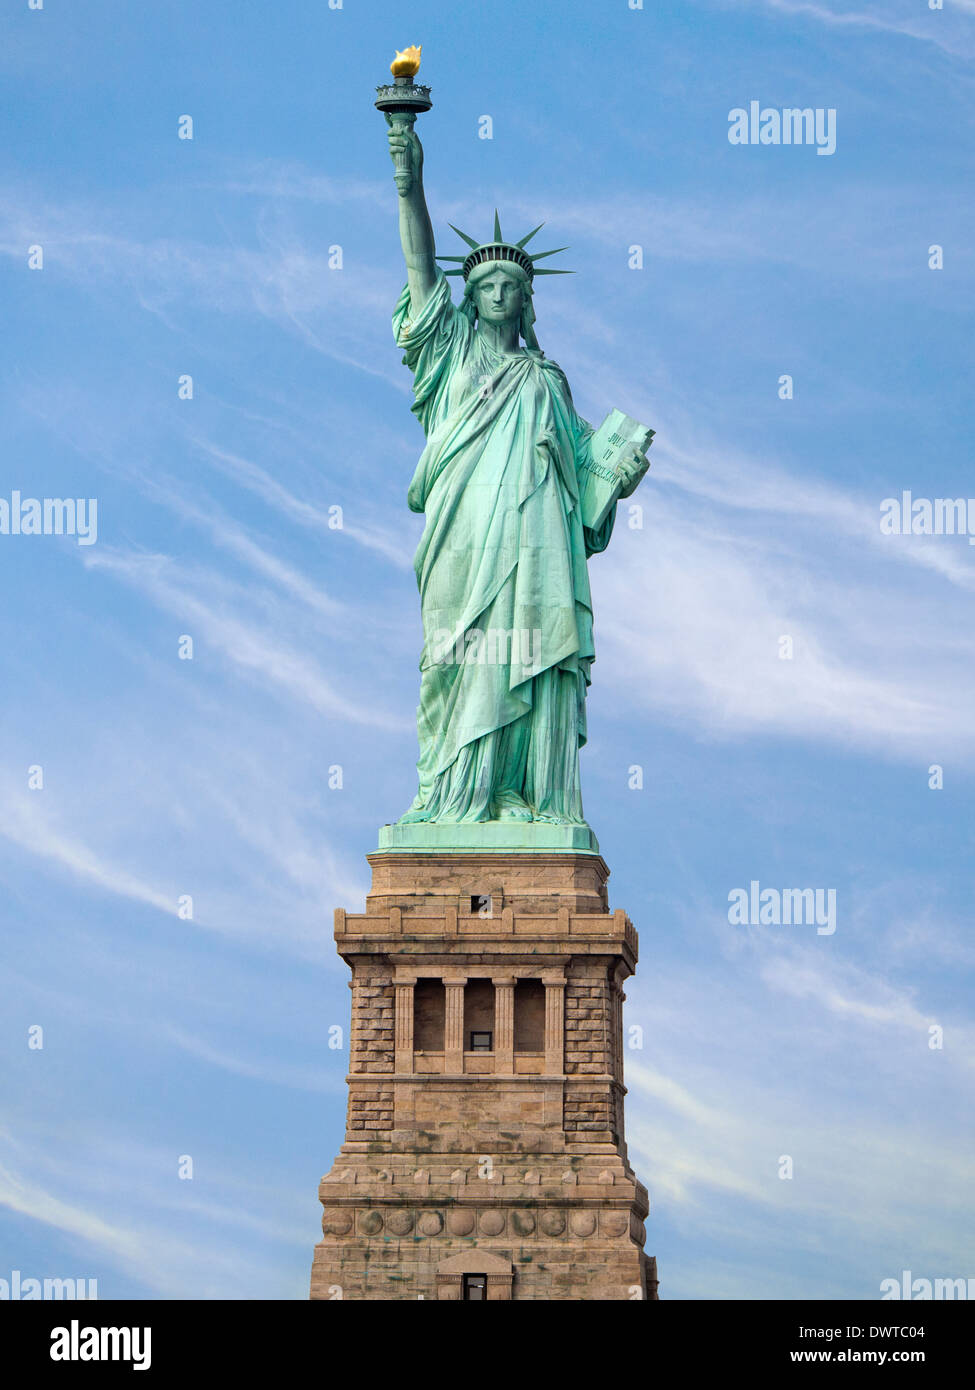 die freiheitsstatue in new york usa 3 stockfoto bild 67533764 alamy. Black Bedroom Furniture Sets. Home Design Ideas